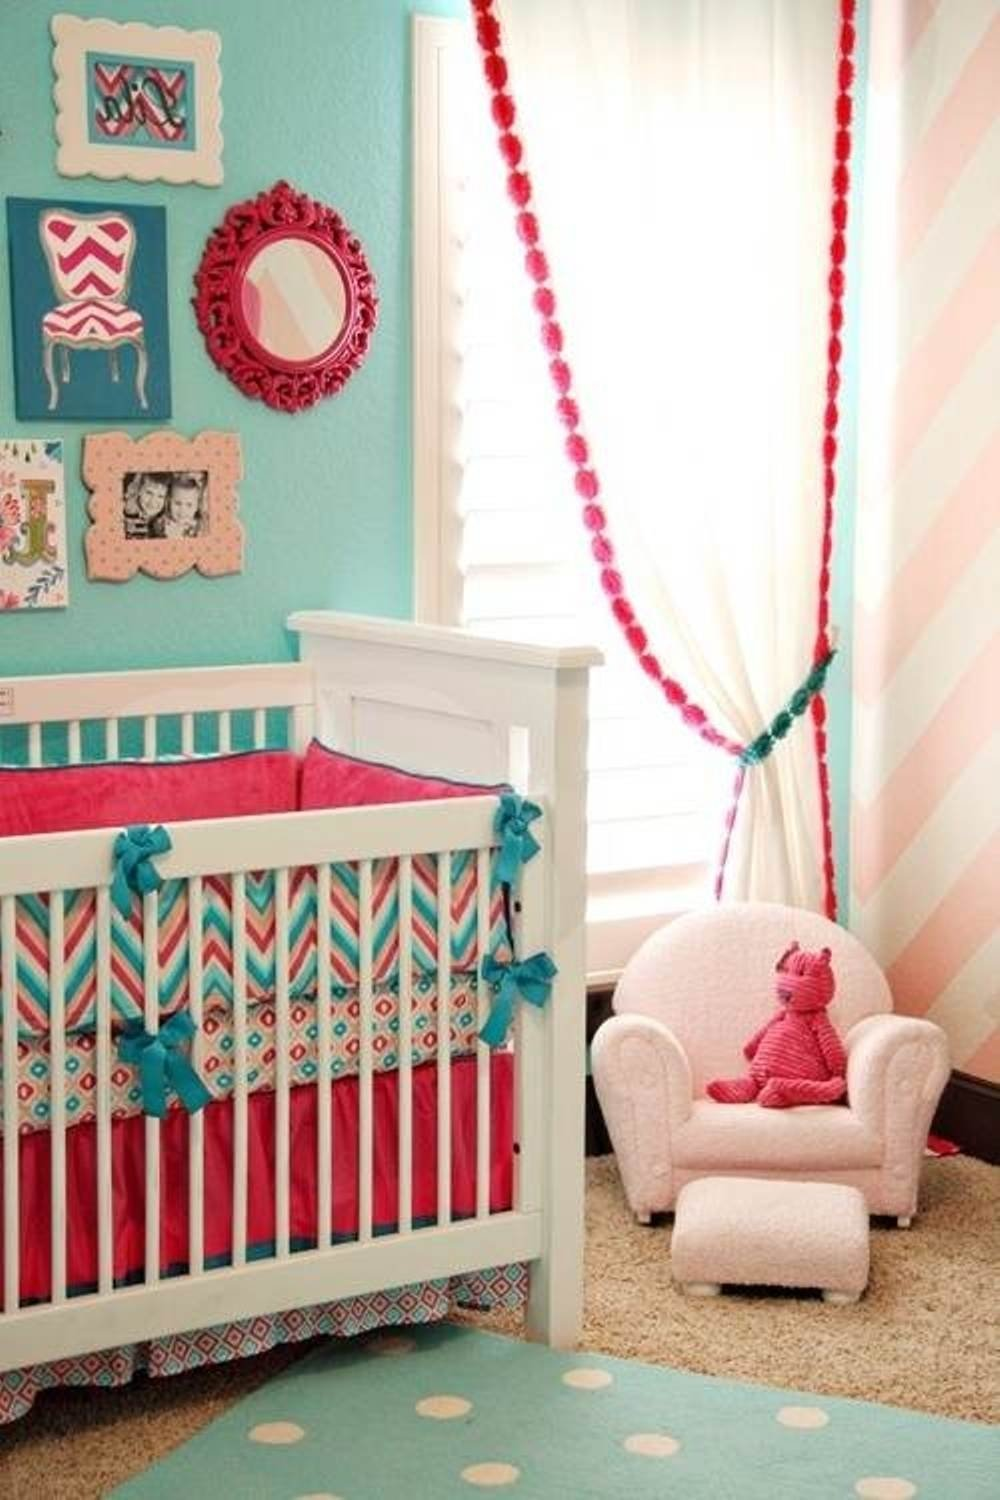 10 Spectacular Cute Baby Girl Picture Ideas cute baby girl bedroom ideas ceardoinphoto 2021